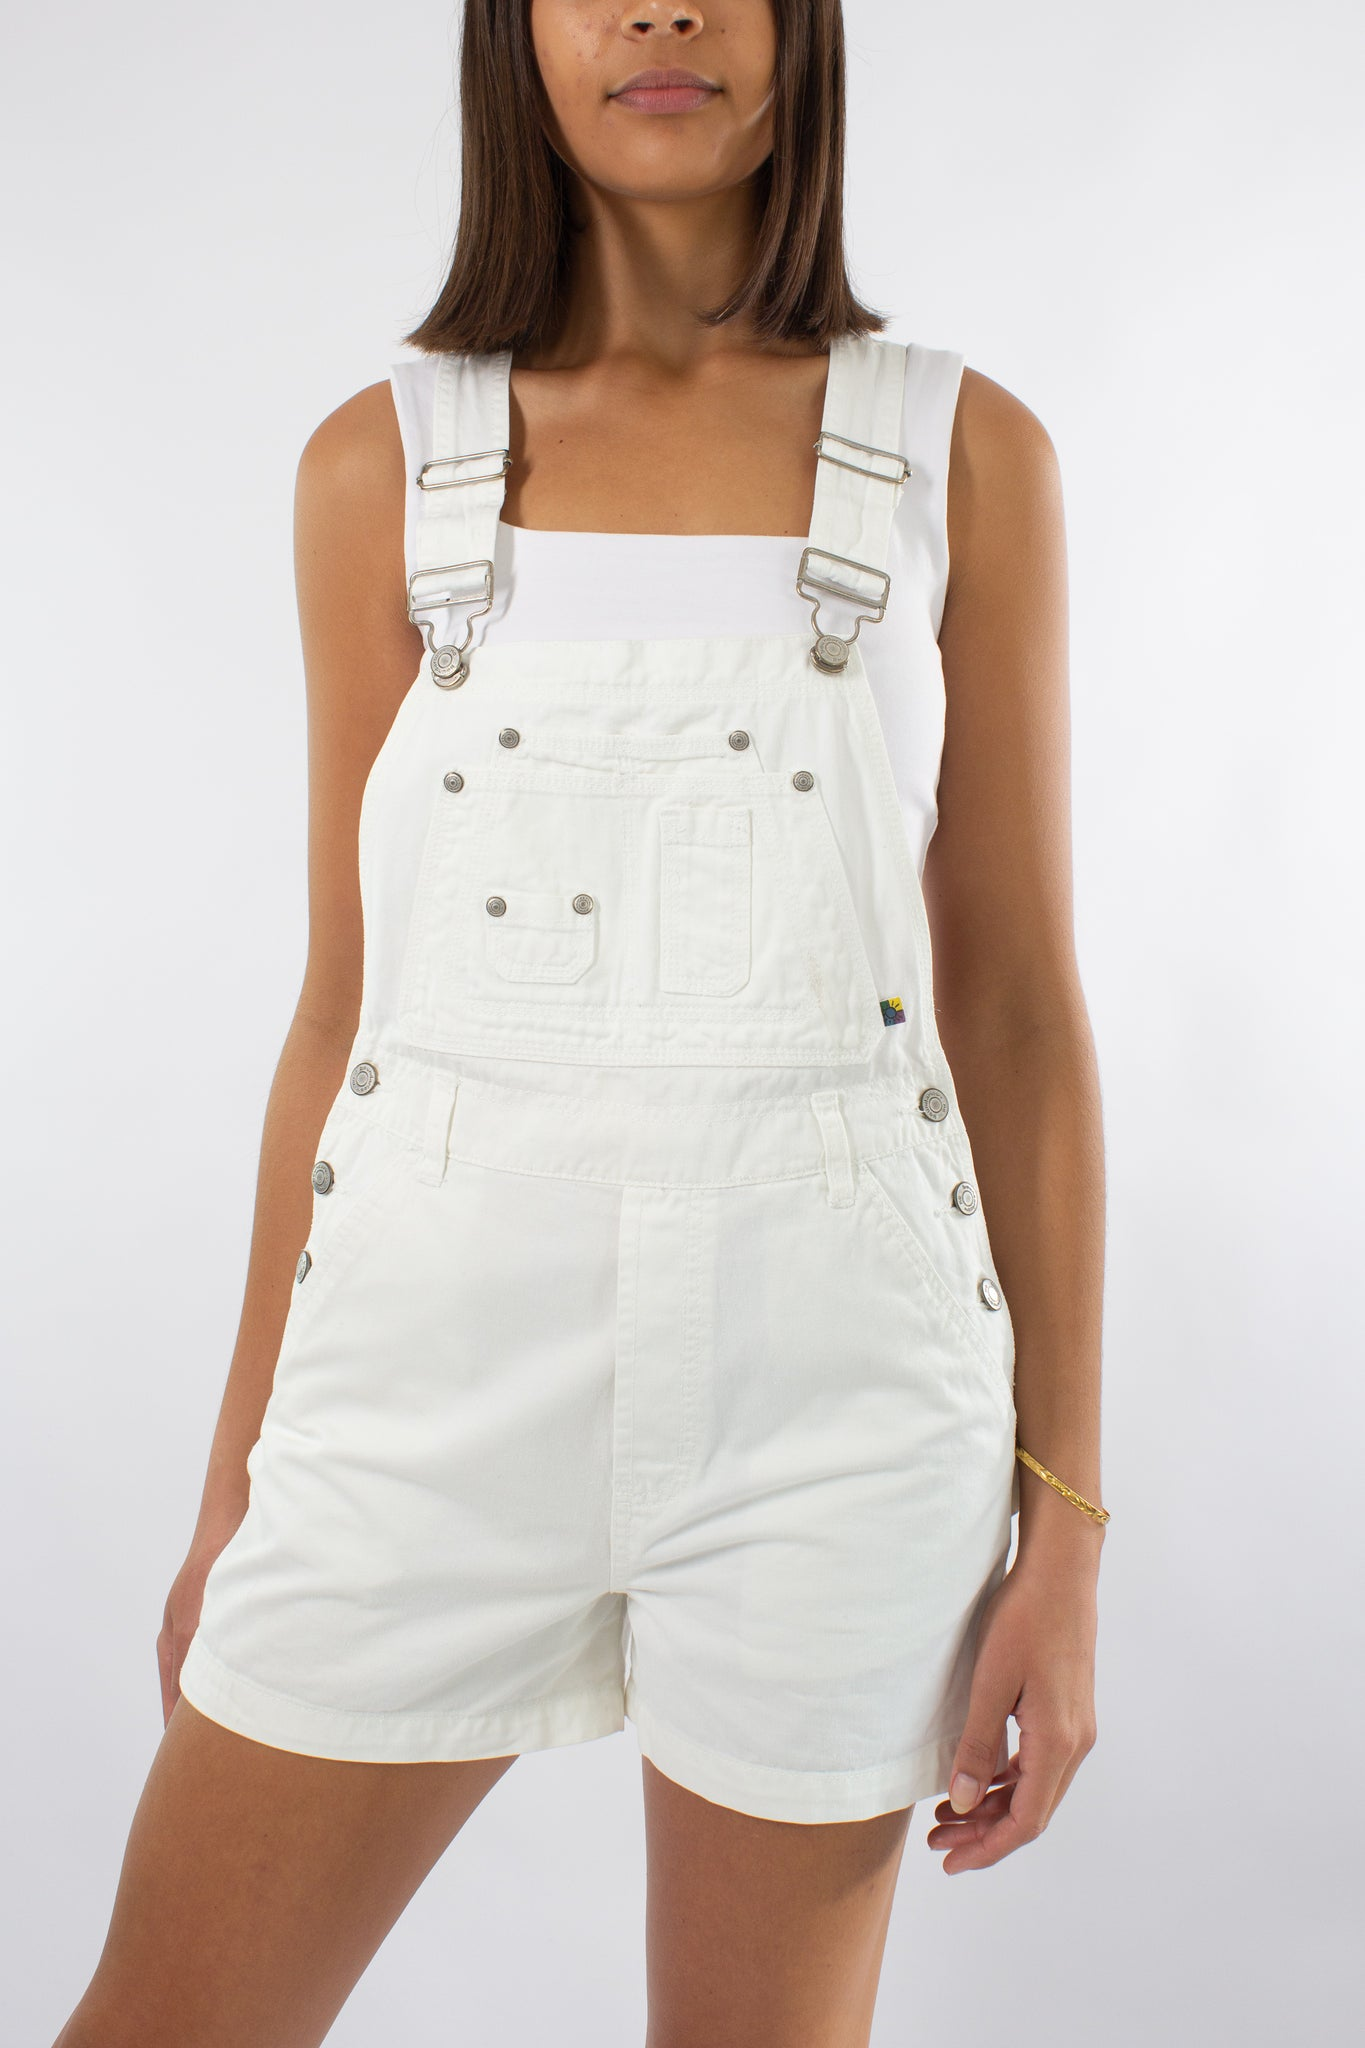 White Denim Overalls - Size S